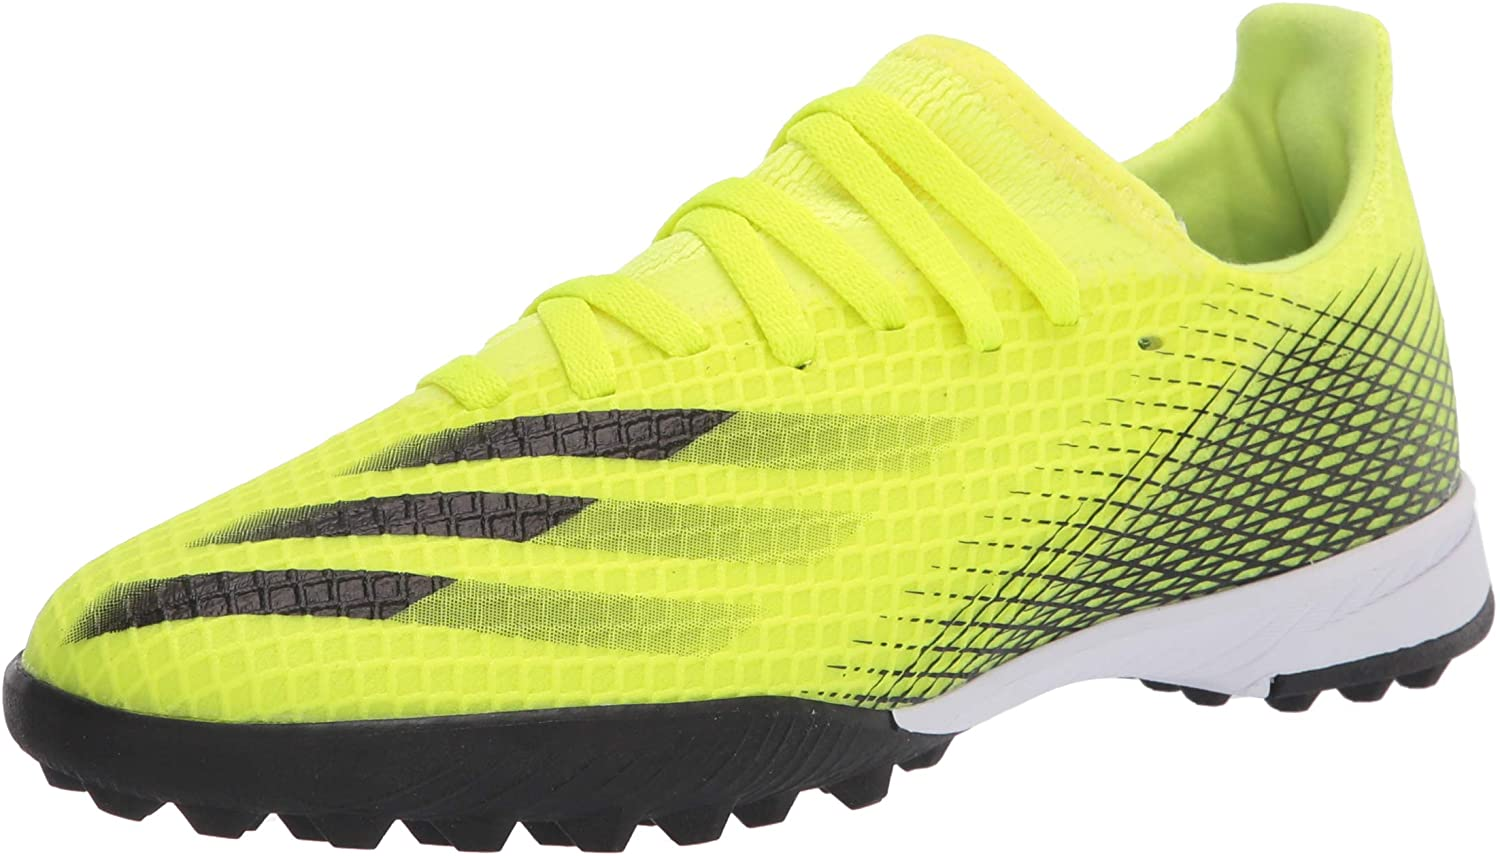 adidas Sales Unisex-Child X security Ghosted.3 Soccer Shoe